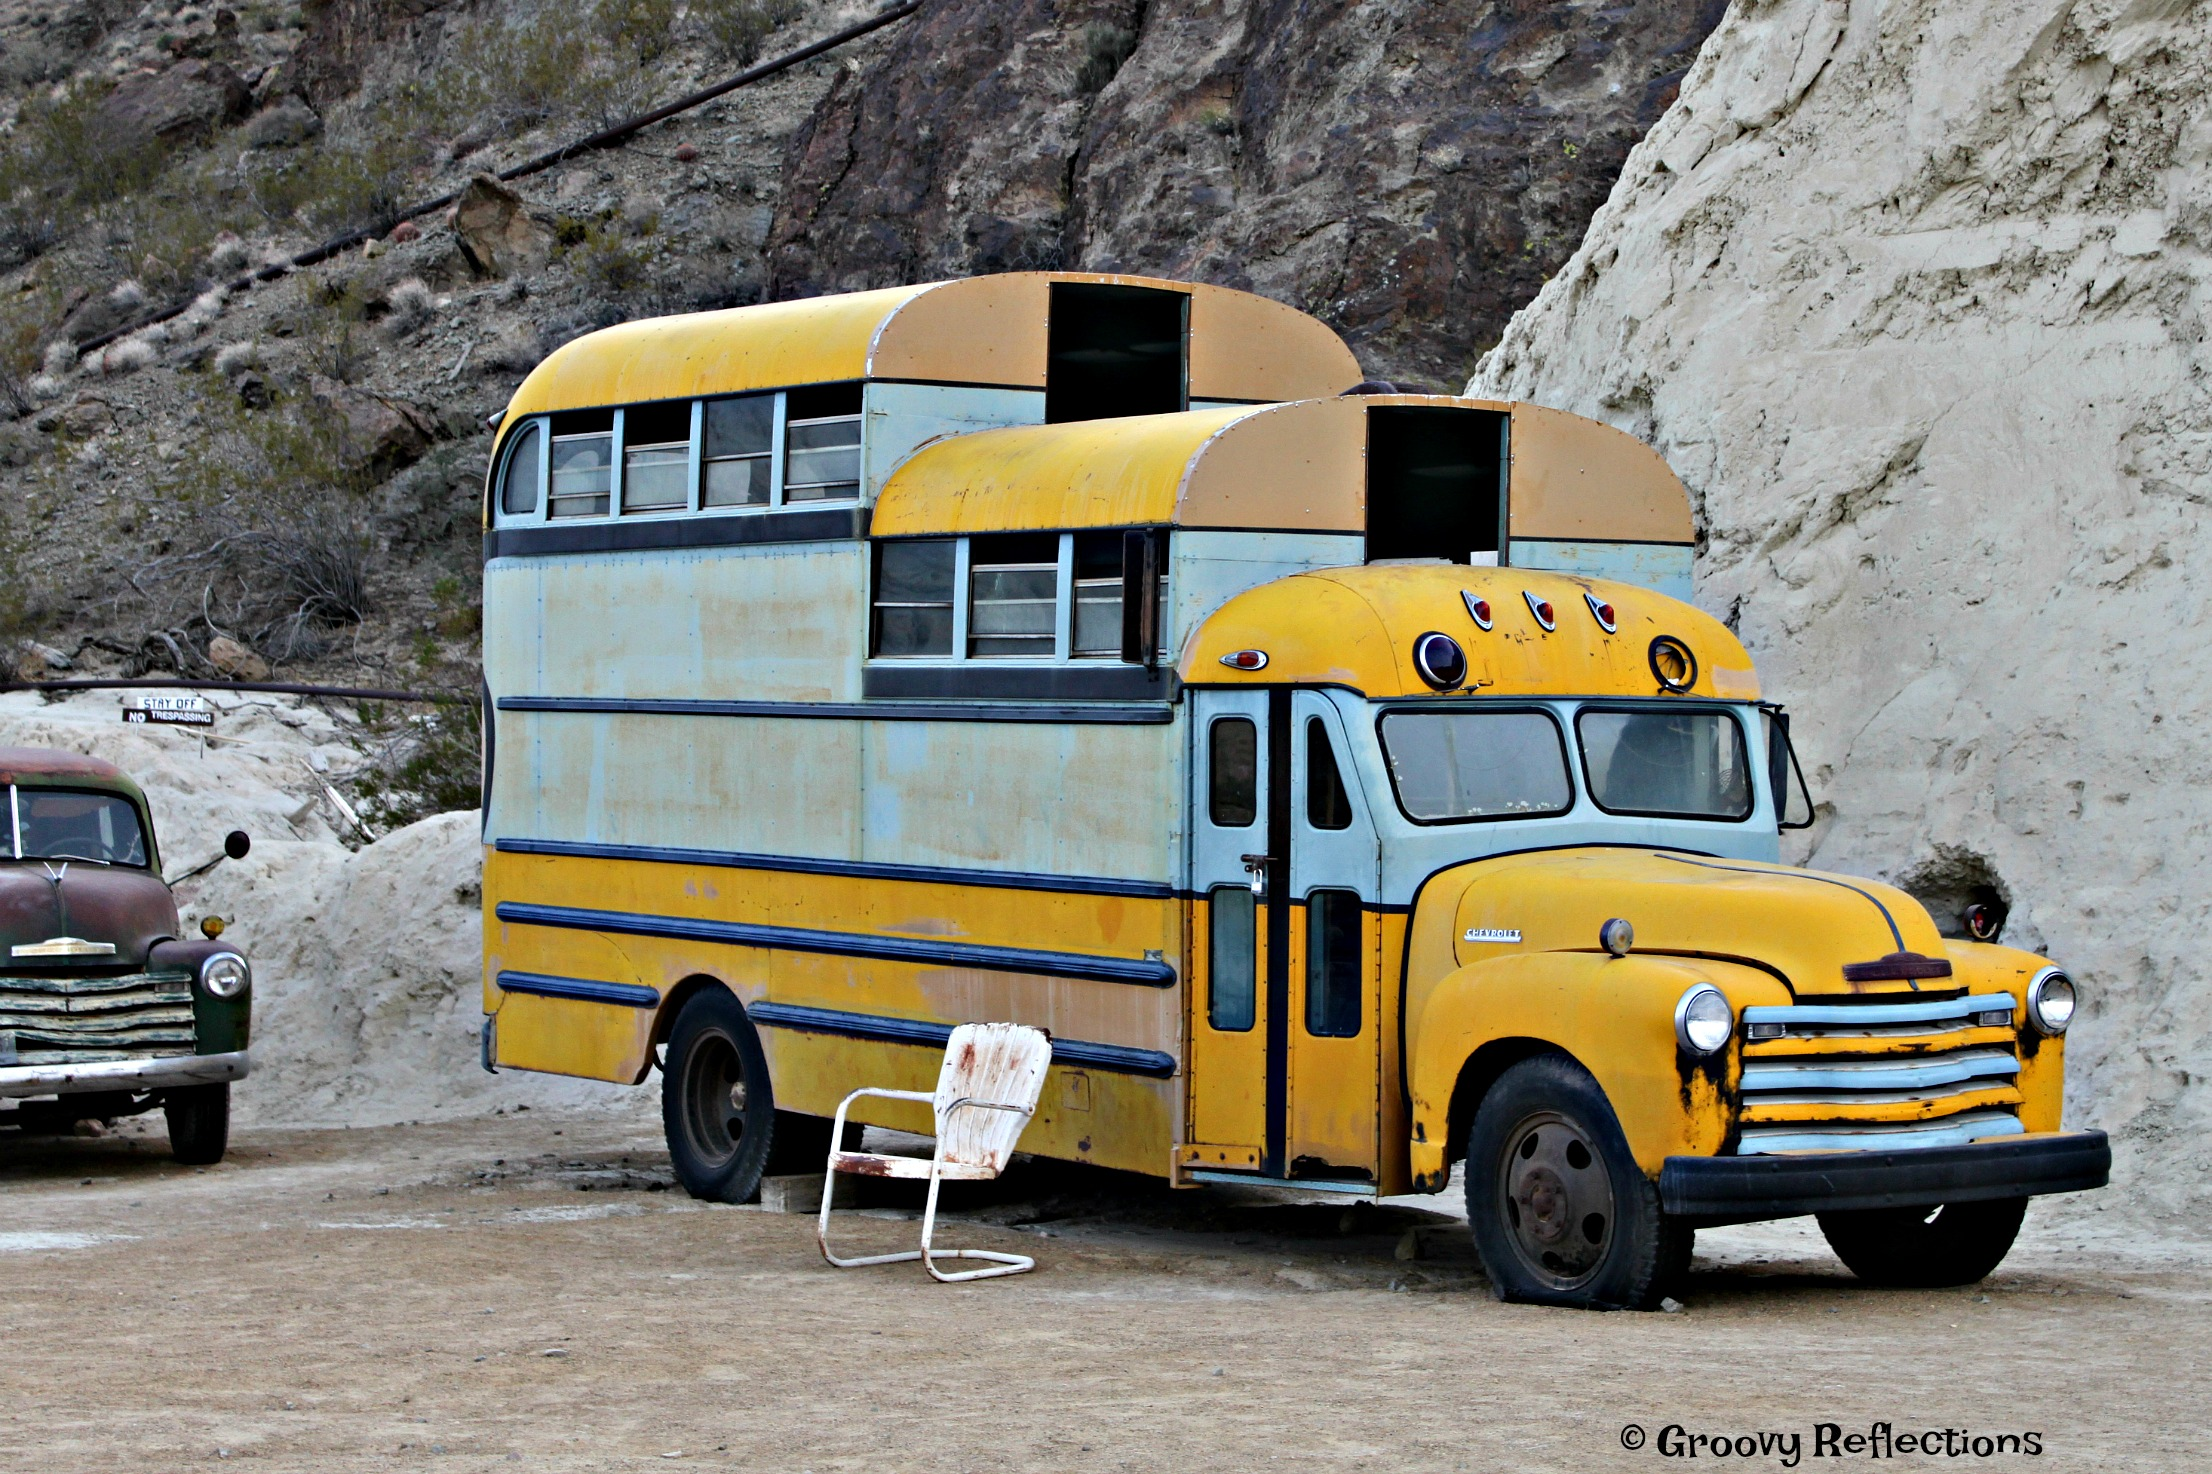 Not the Partridge Family's BUS!